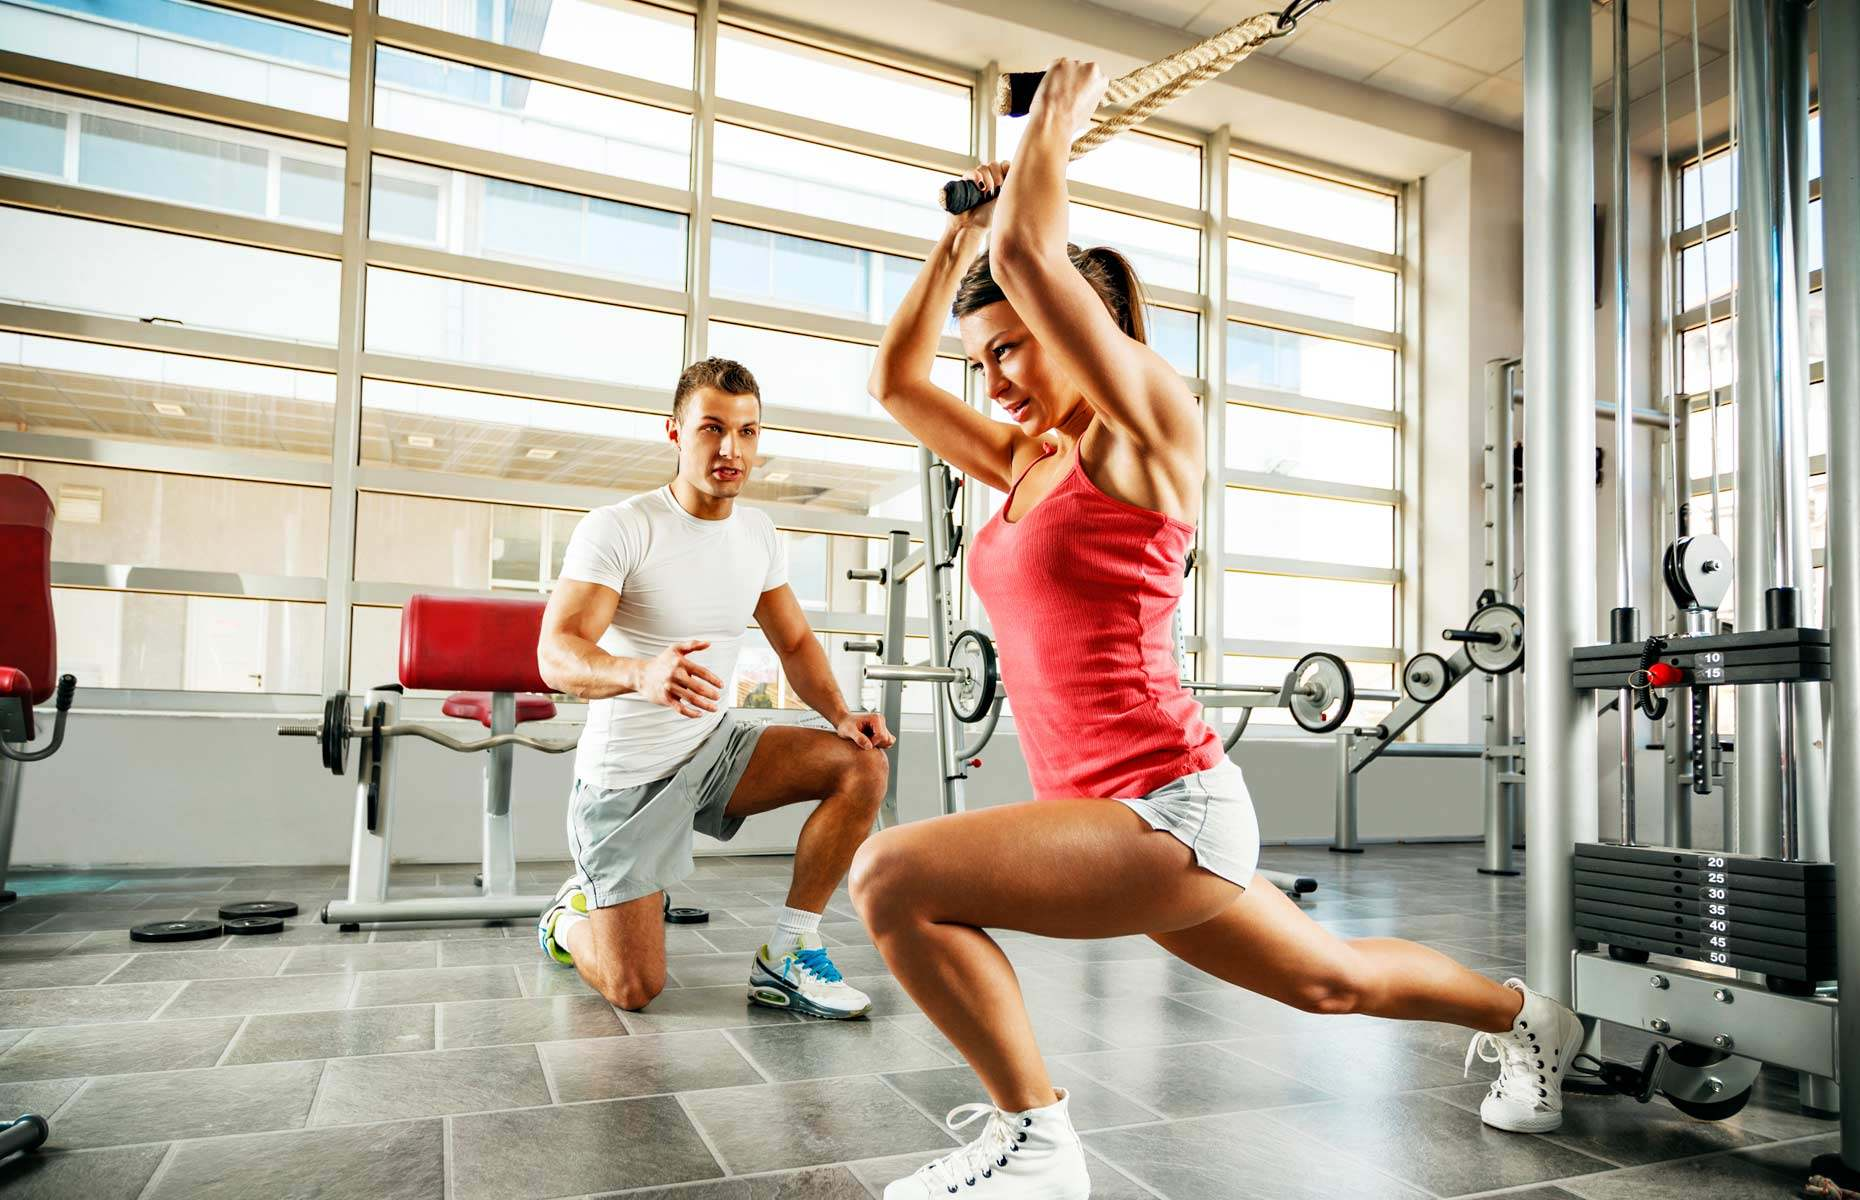 Watch The Anti-Aging Workout video